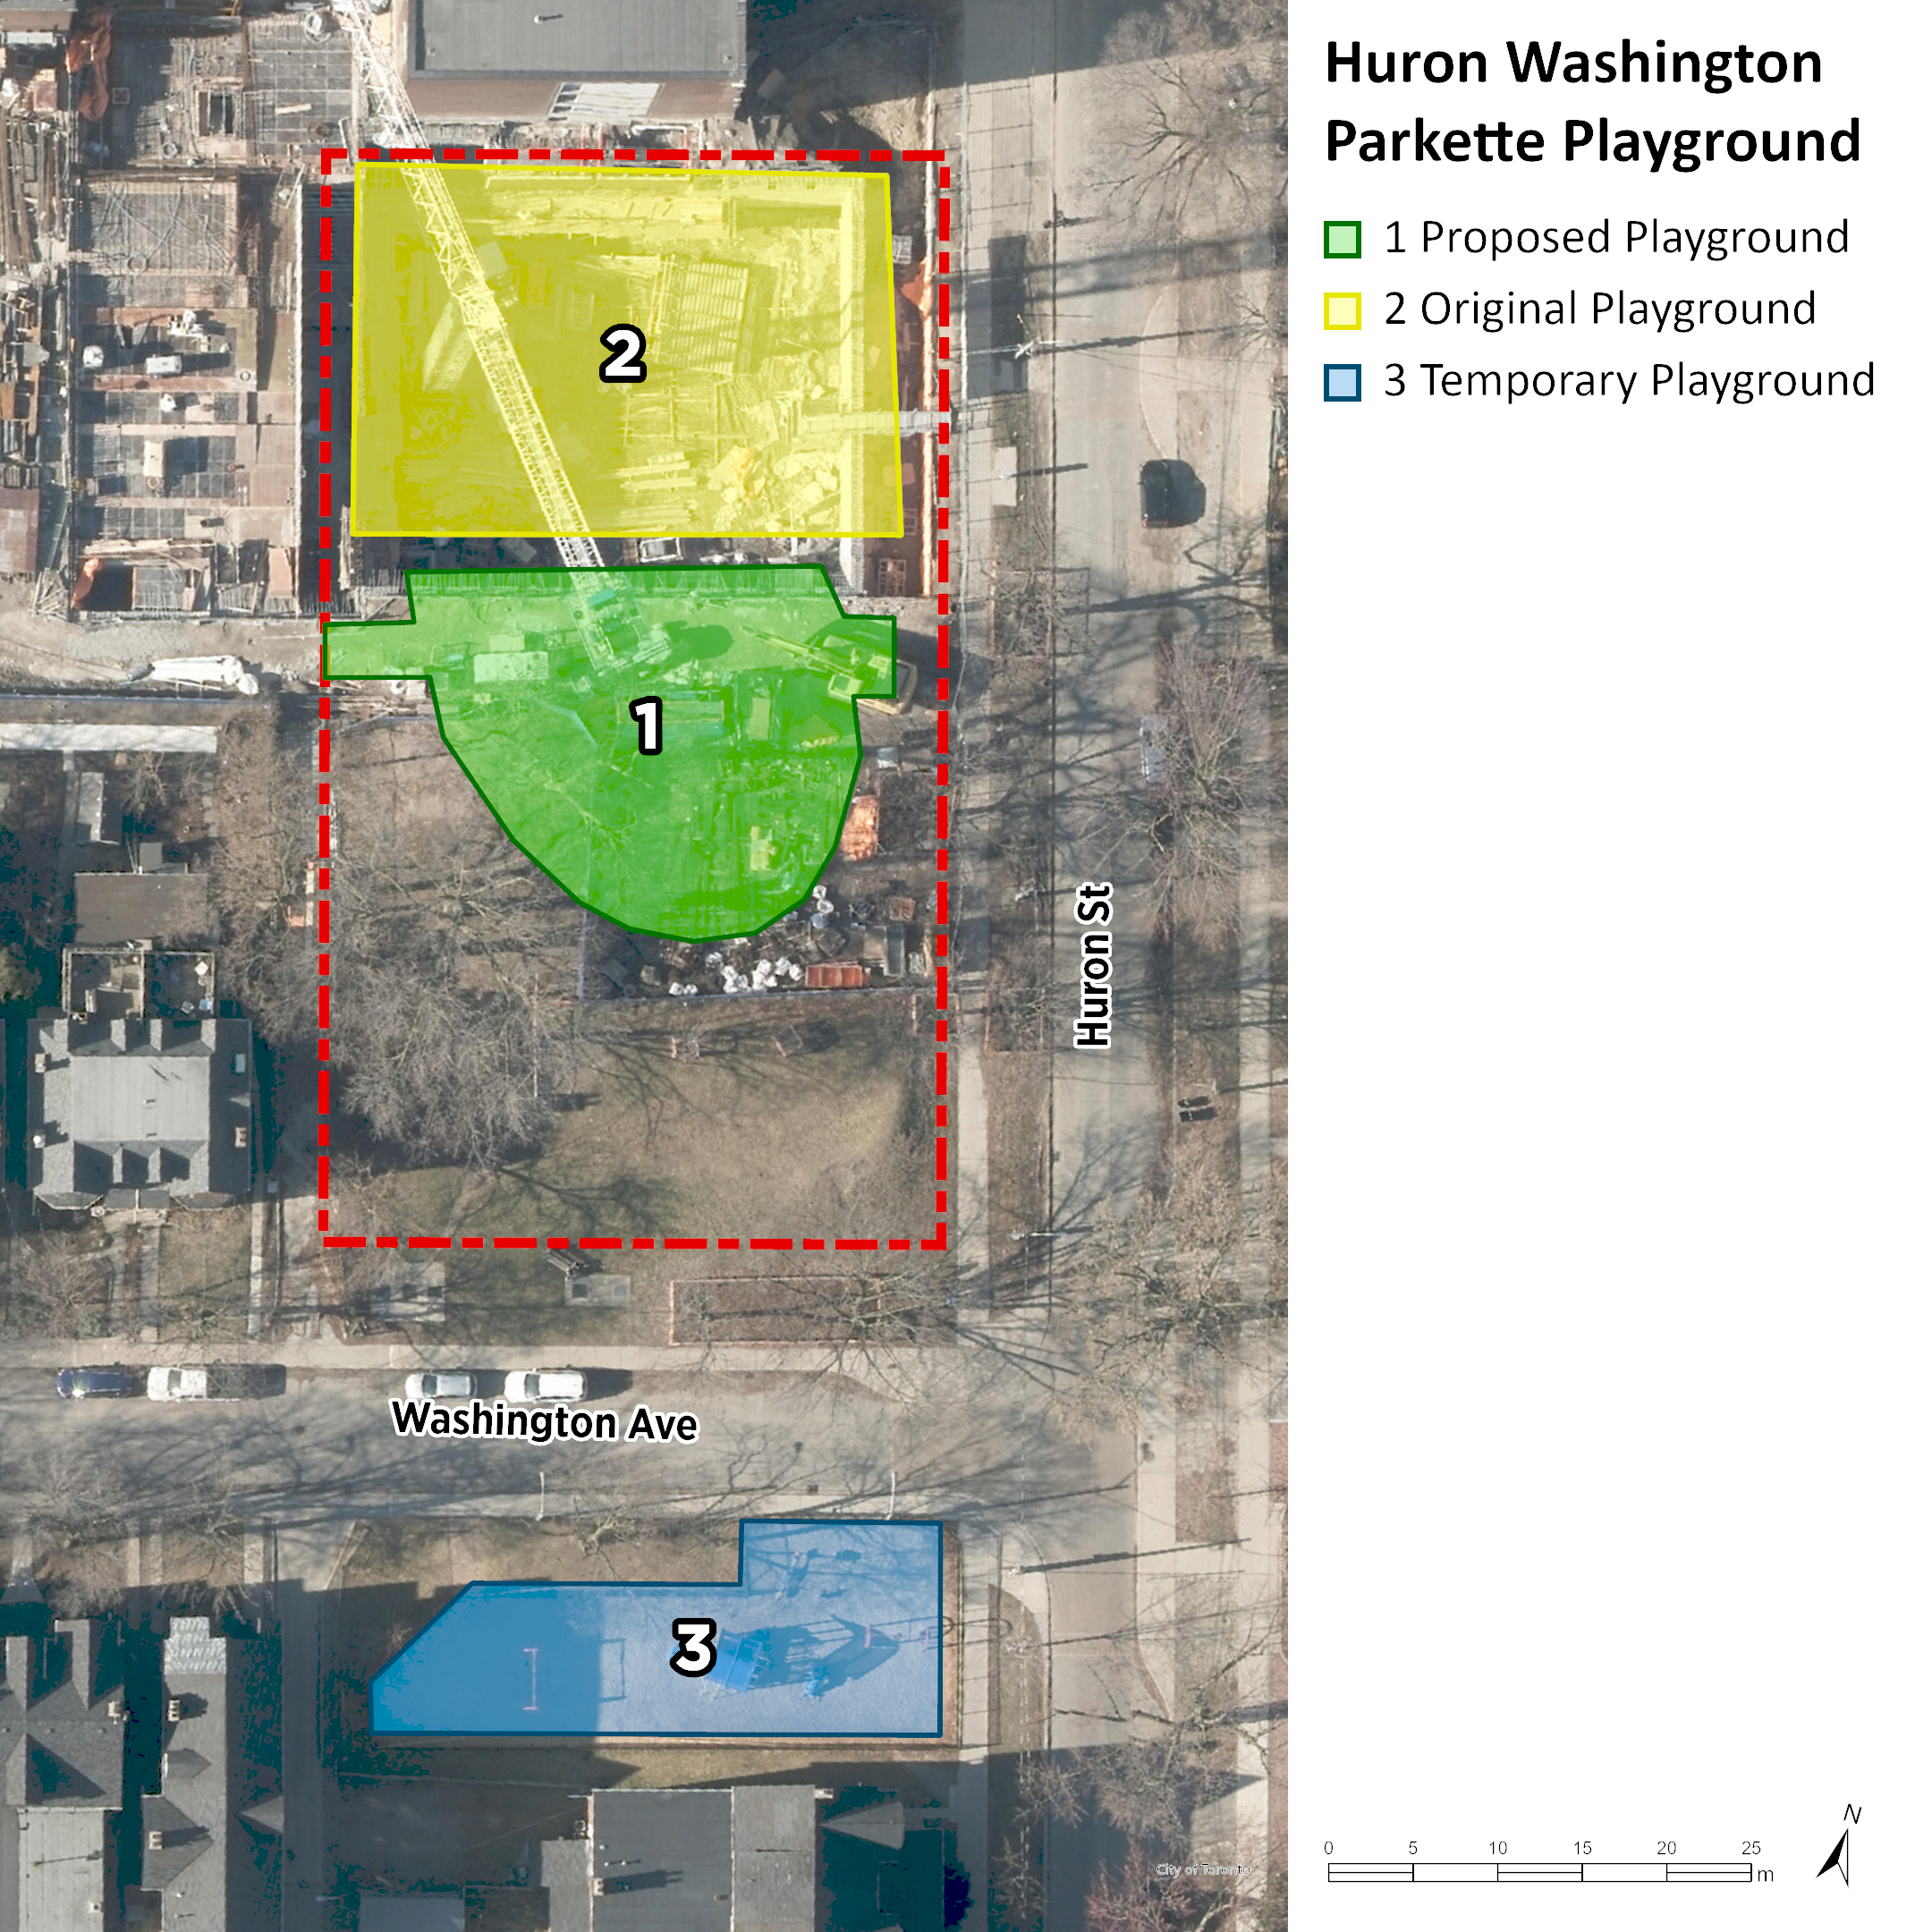 An aerial image of Huron-Washington Parkette Playground. The original playground location is shown in yellow at the north side of the site. The new playground location is shown in green just south of the original location. The temporary location is shown in blue on the other side of Washington Avenue, to the south.